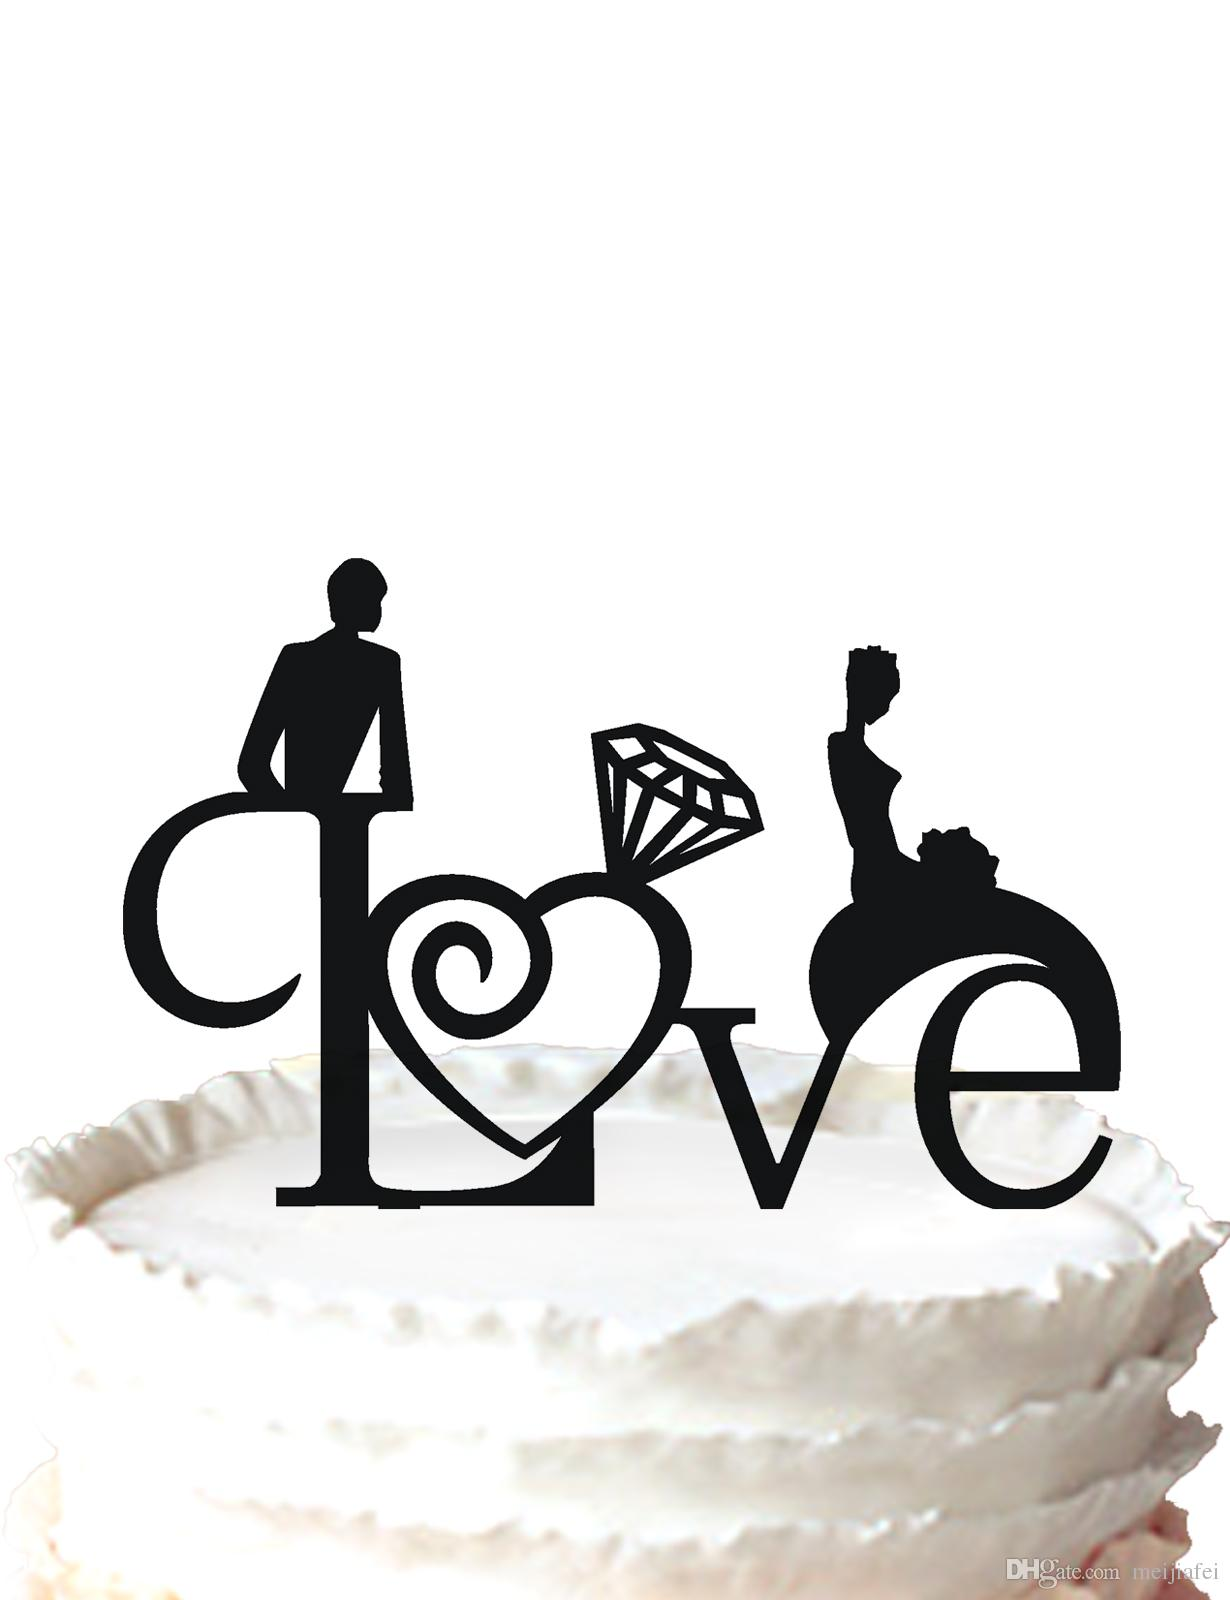 2018 Love Wedding Cake Topper Silhouette Bride And Groom And Diamond     2018 Love Wedding Cake Topper Silhouette Bride And Groom And Diamond For  Option From Meijiafei   17 31   Dhgate Com